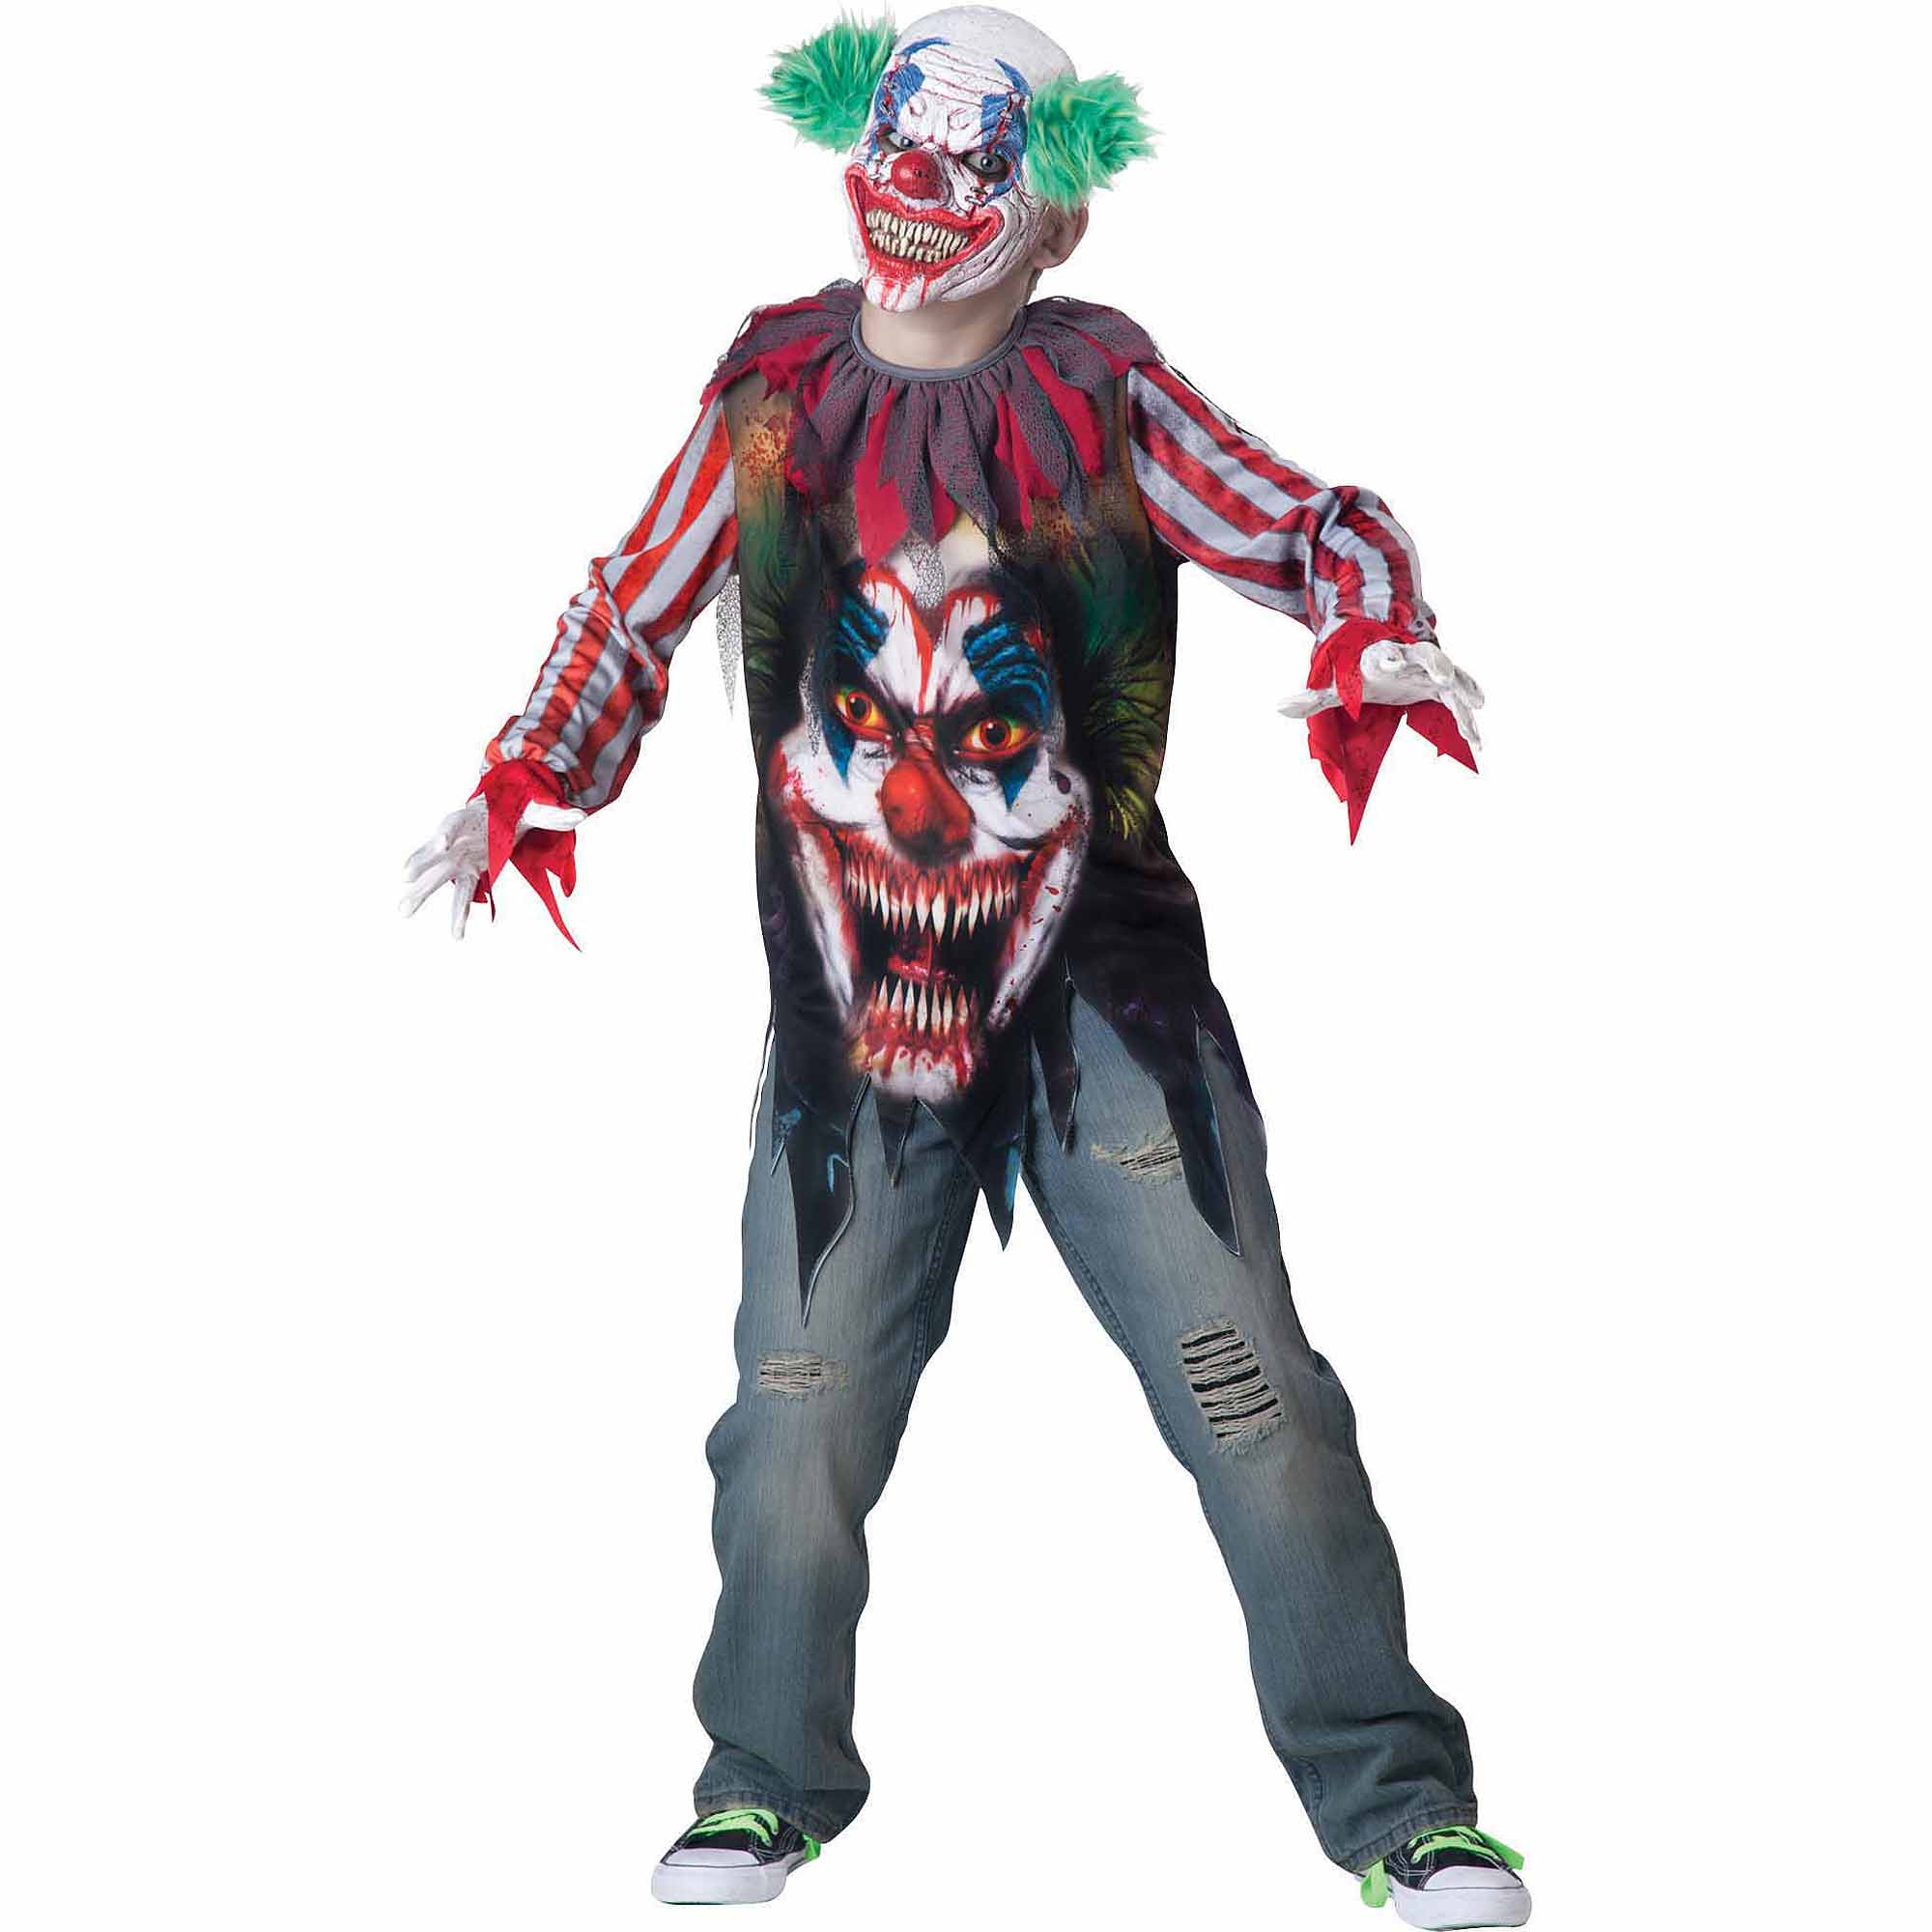 Hazmat Hazard Child Halloween Costume - Walmart.com